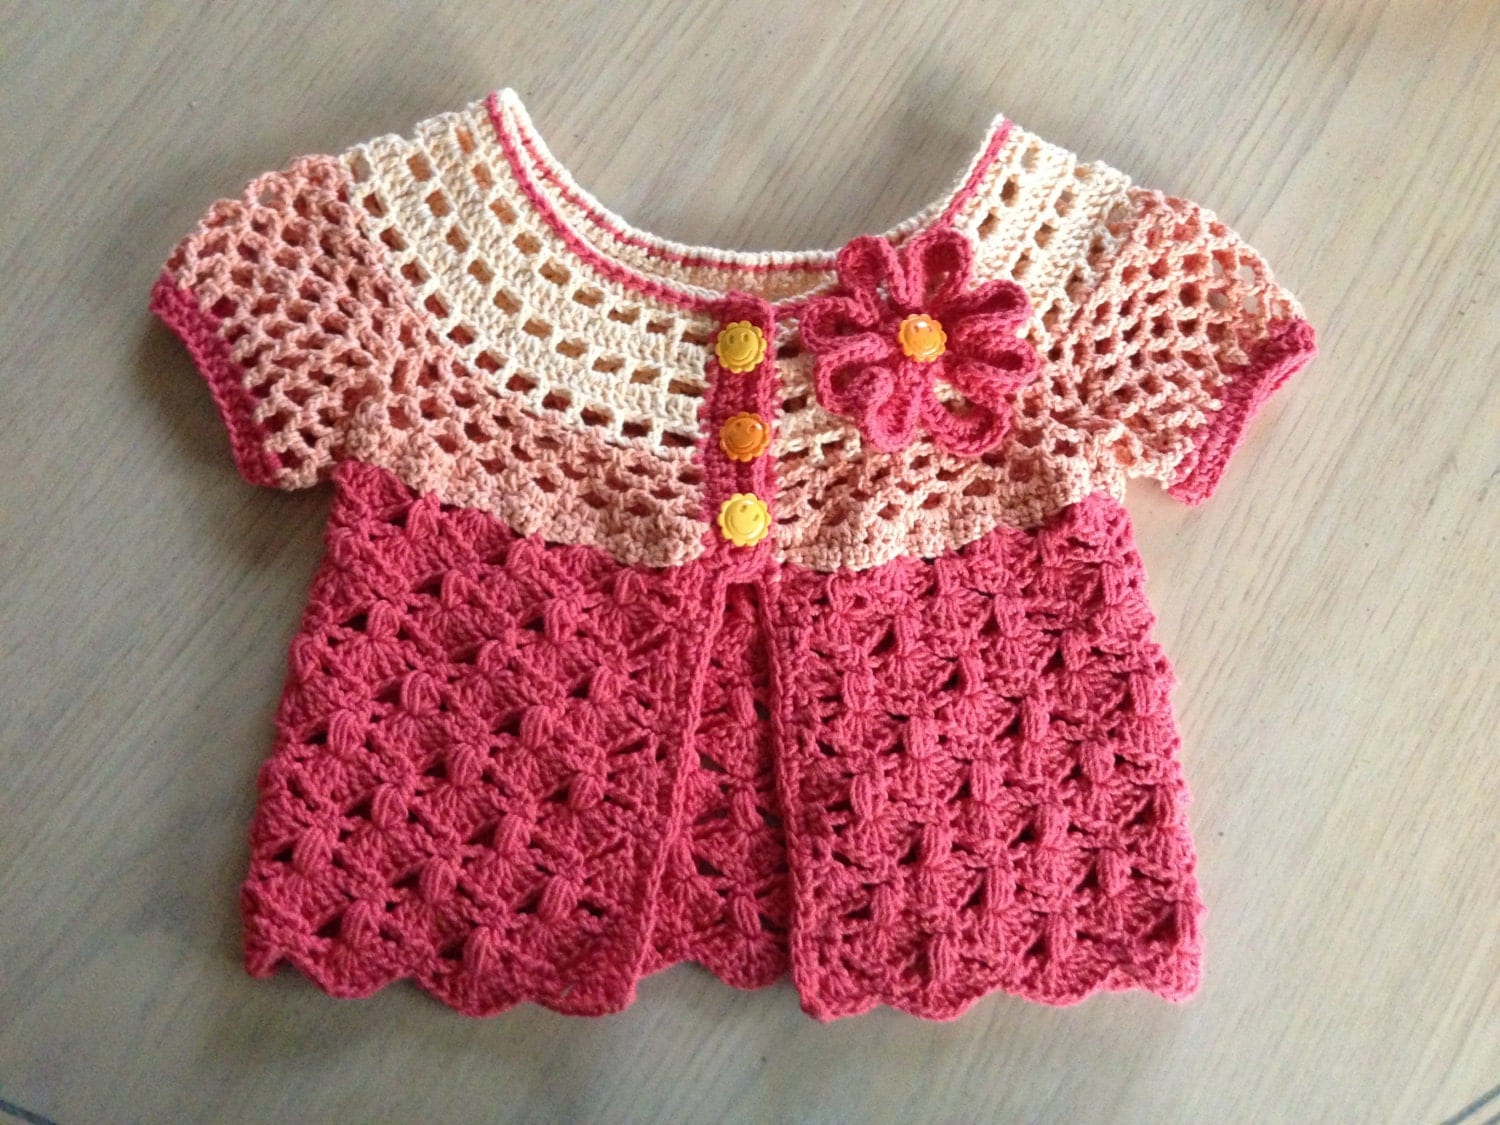 Crochet Baby Girl Cardigan Pattern Free : baby girl crochet sweater patterns Car Pictures